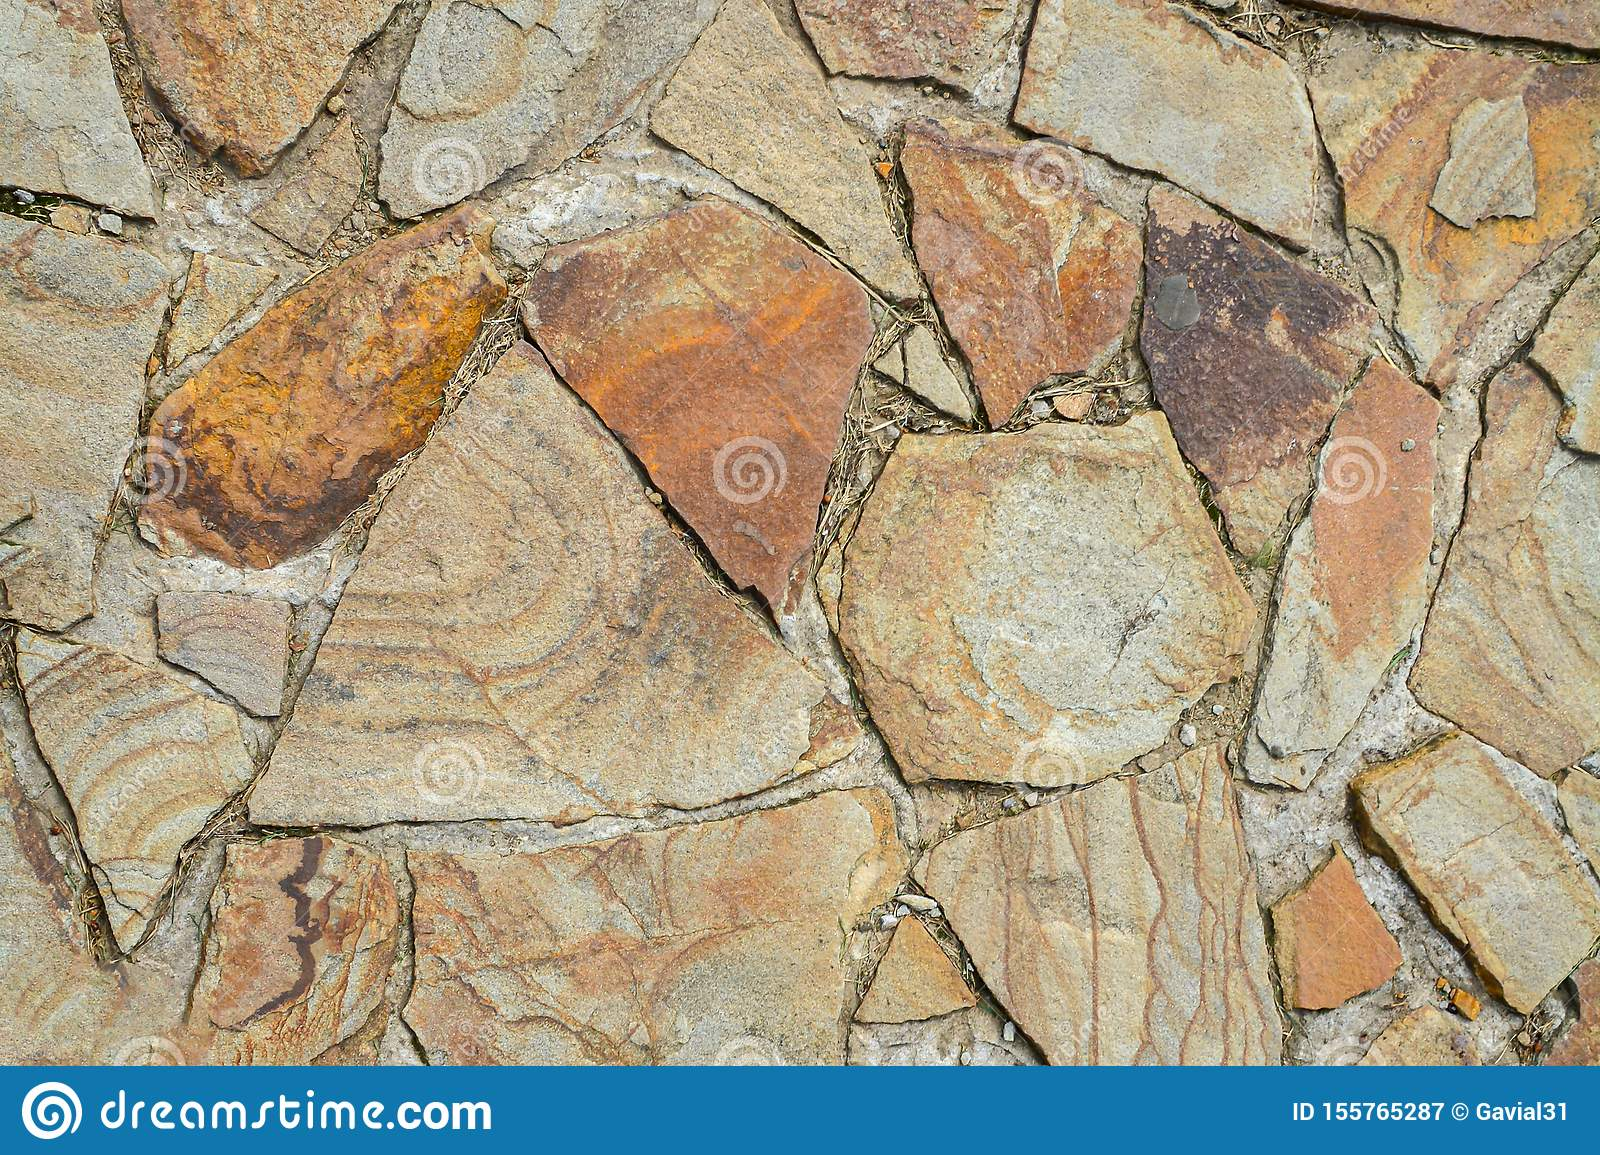 Texture of large flat stones. Abstract natural background. The concept of masonry made from natural, unprocessed stones